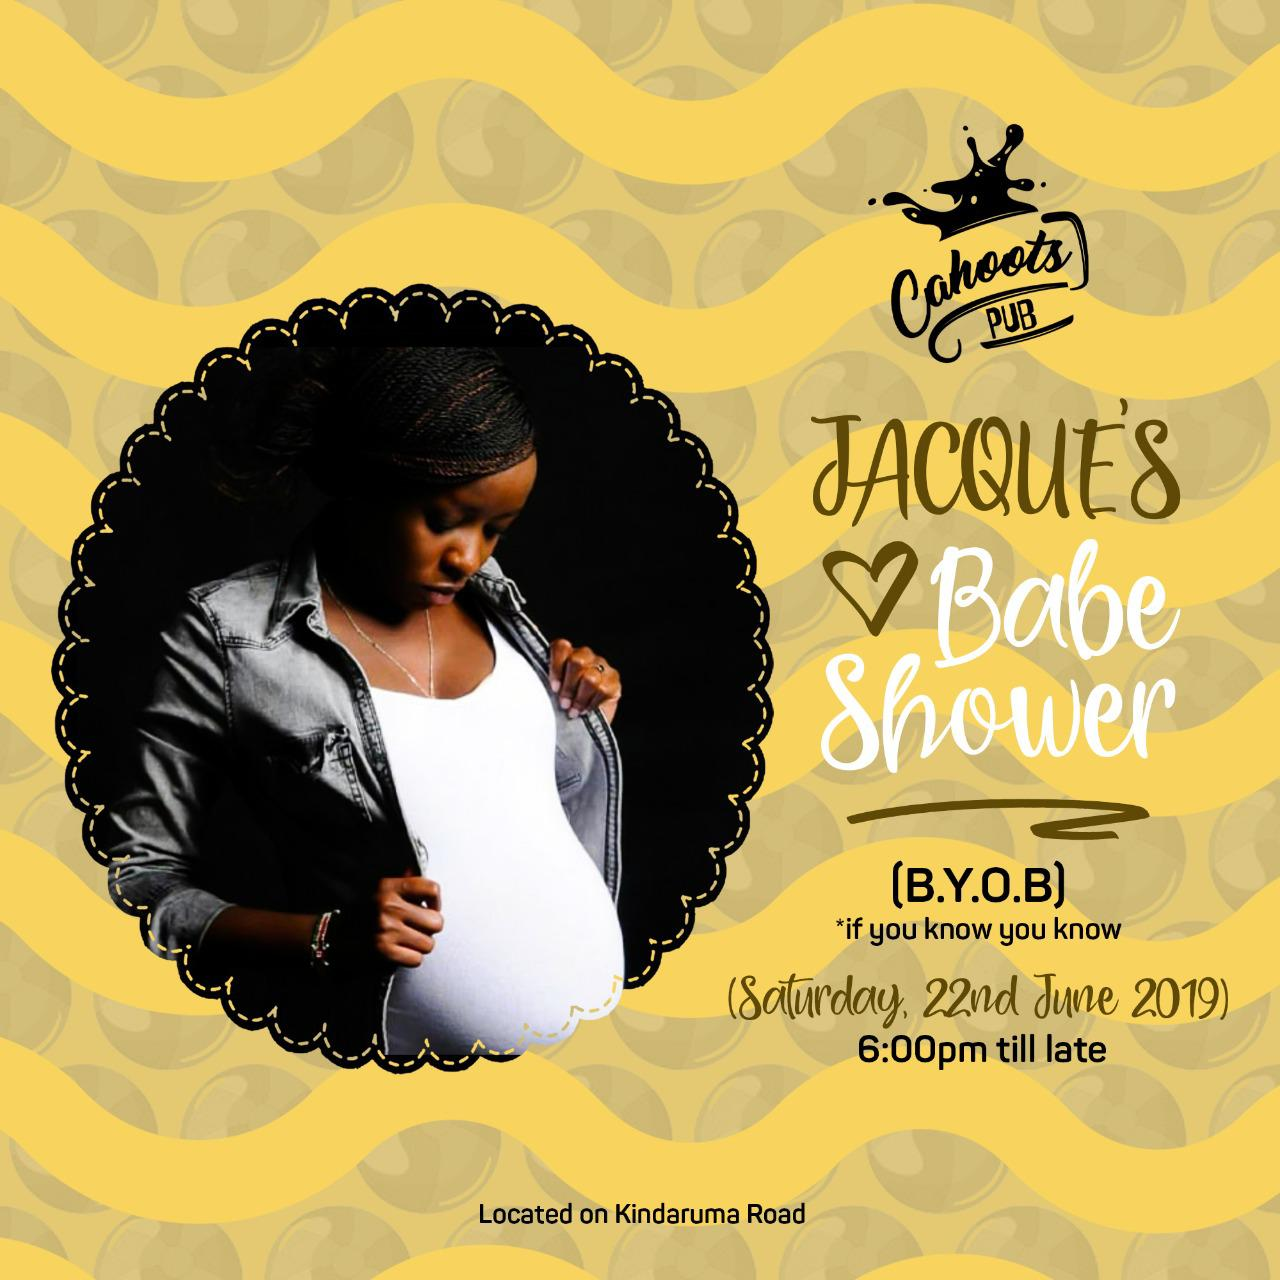 Jacque Babe shower - Jacque Maribe's sister responds to 'pregnancy rumours'